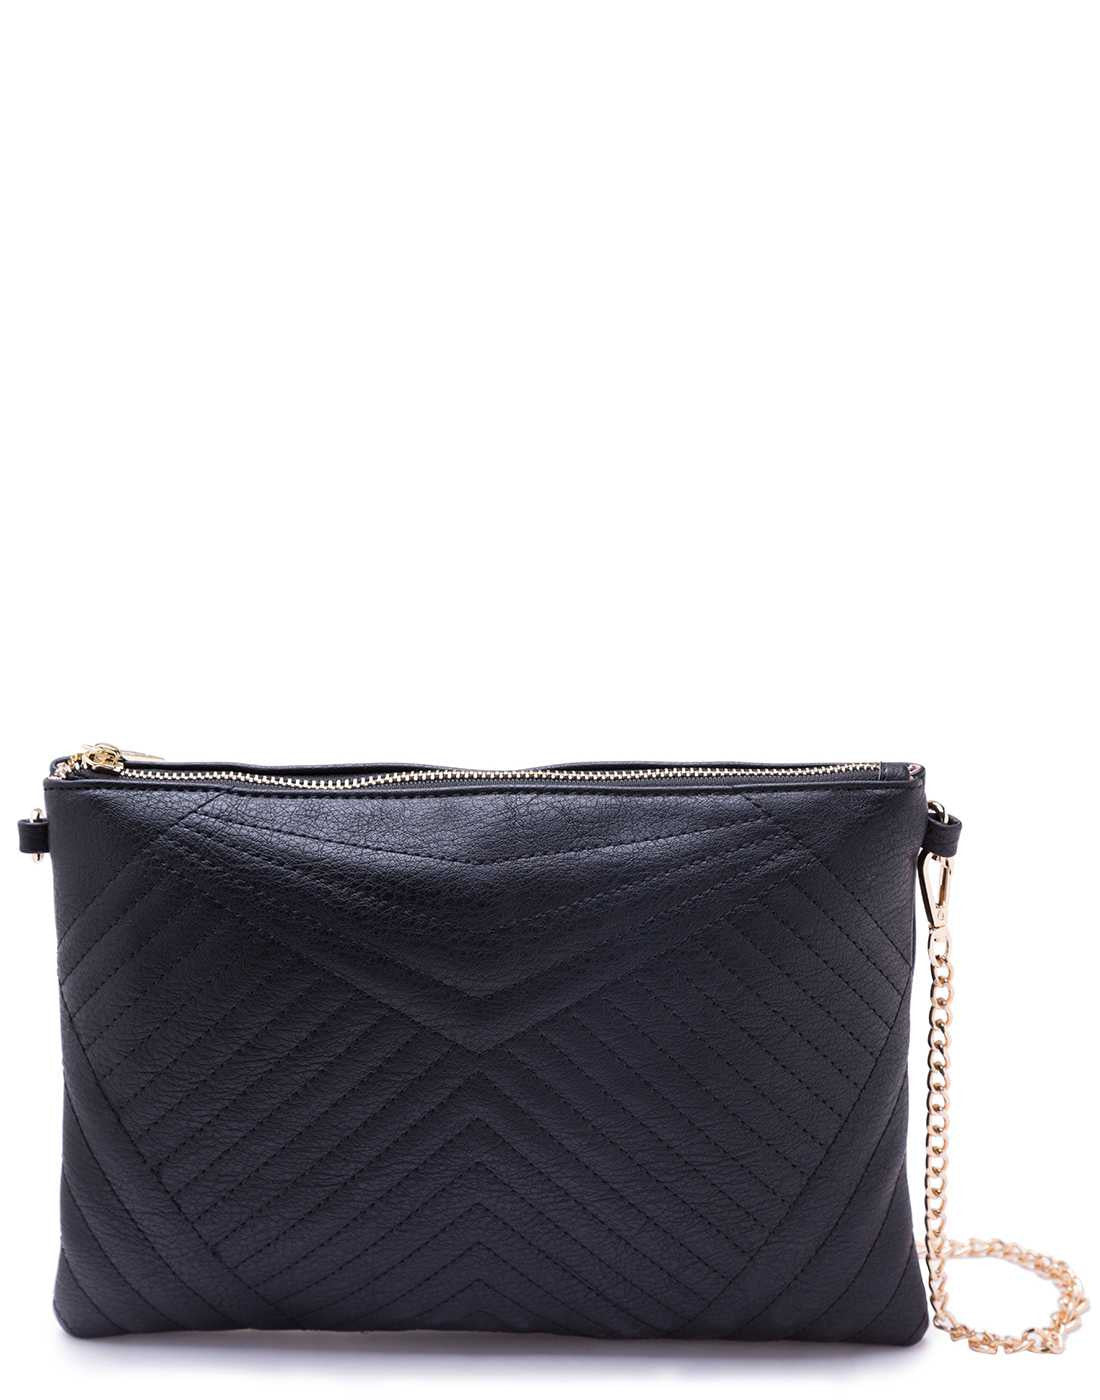 Quilted Black Sling Bag with Chain